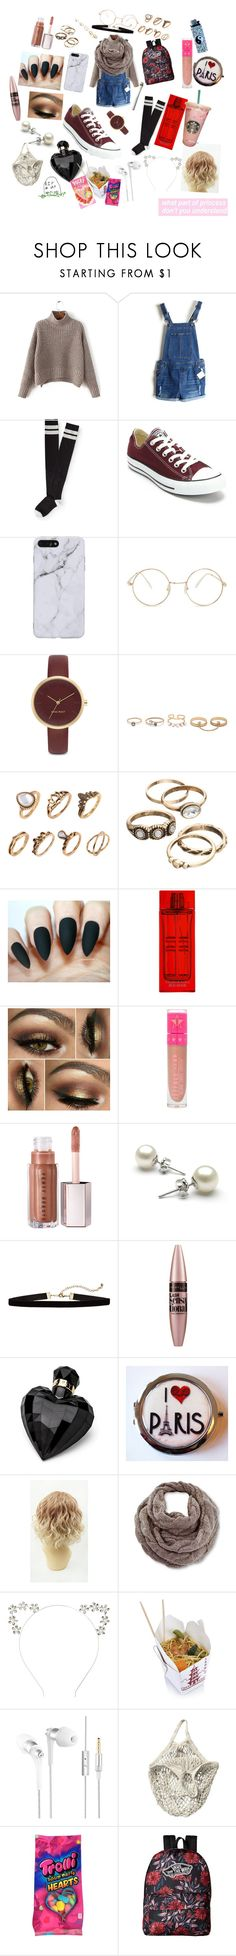 """""""Untitled #89"""" by bi-sky132 ❤ liked on Polyvore featuring Aéropostale, Converse, Forever 21, Nine West, LULUS, Elizabeth Arden, Jeffree Star, Maybelline, Lipsy and Venus"""